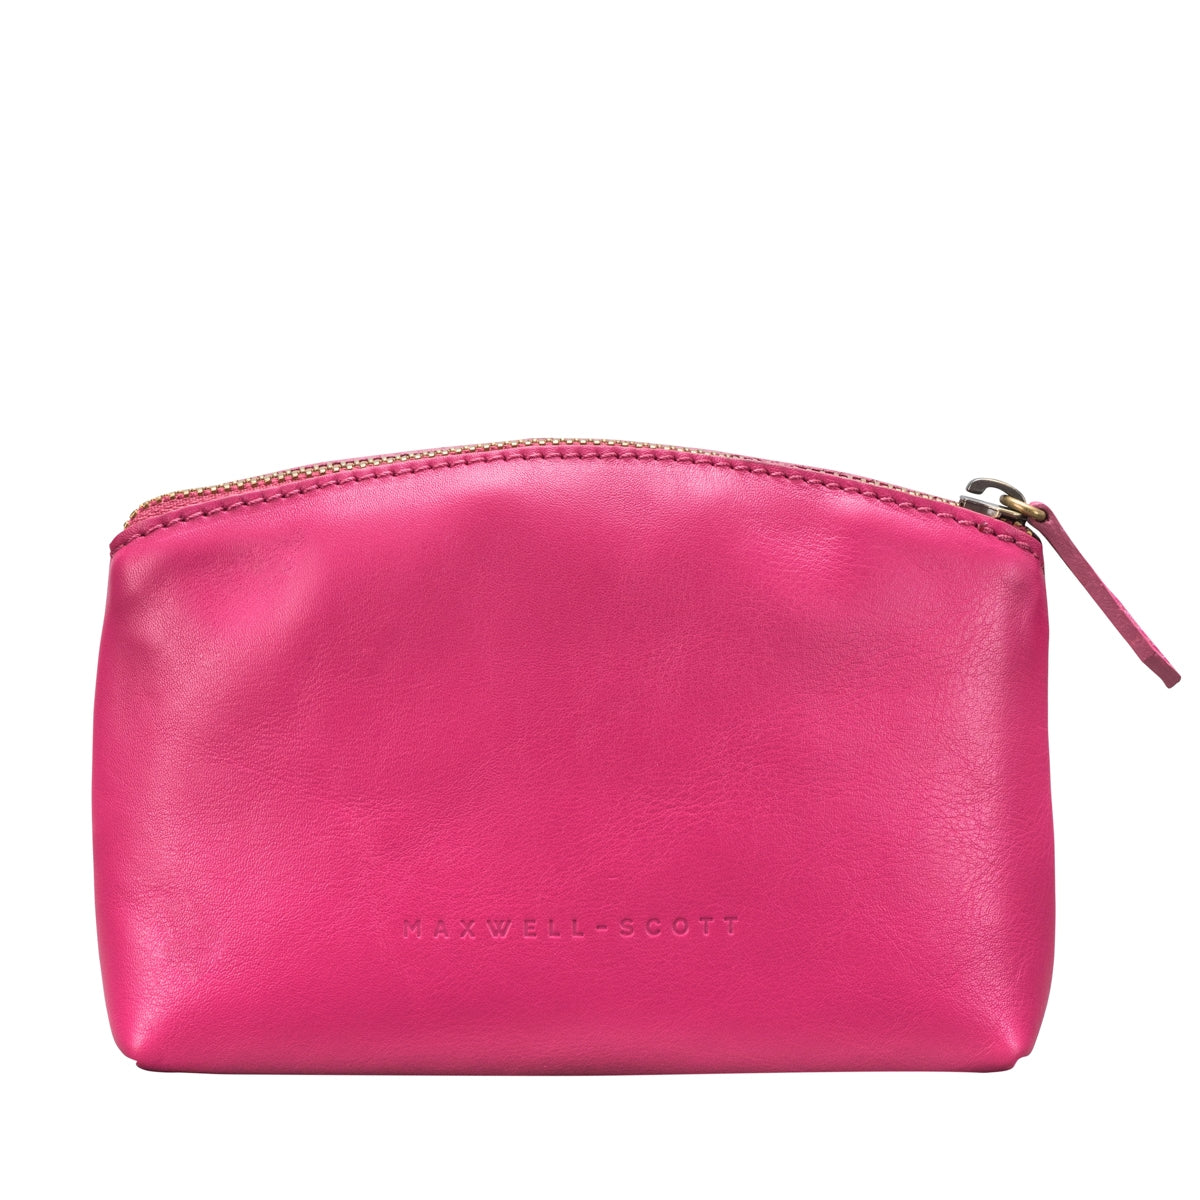 Image 3 of the 'Chia' Italian Leather Make Up Bag